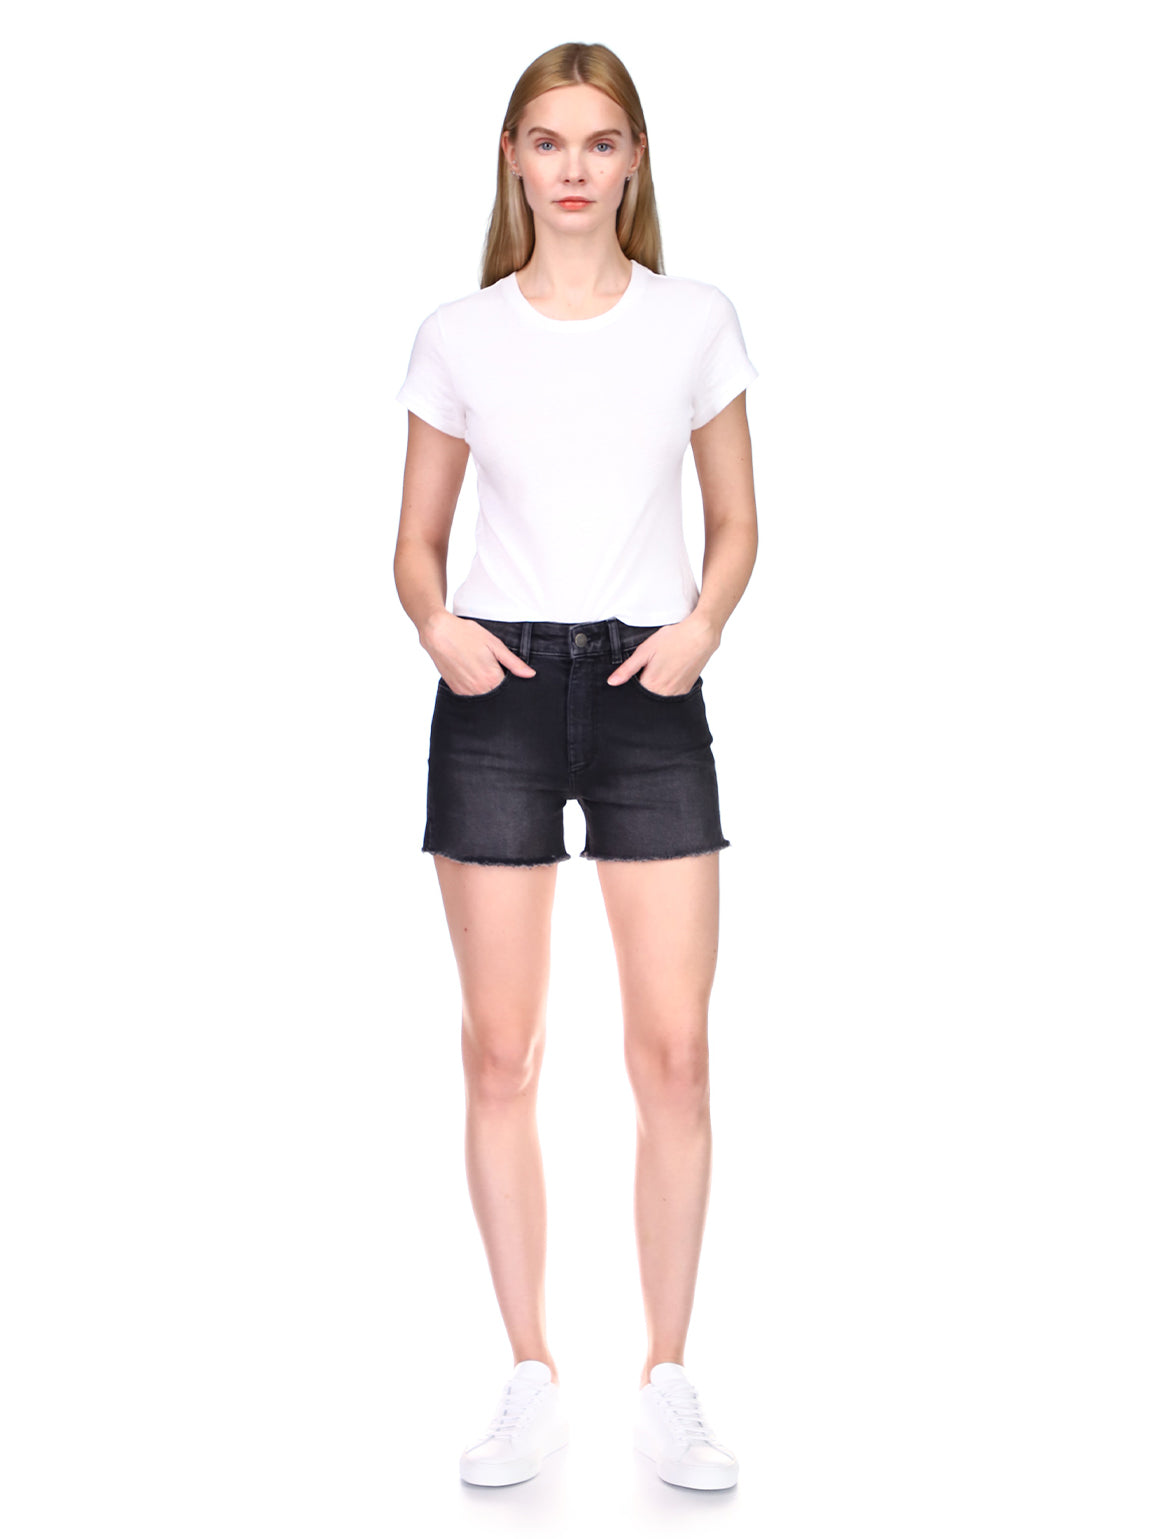 Cecilia Short Classic 3.25"